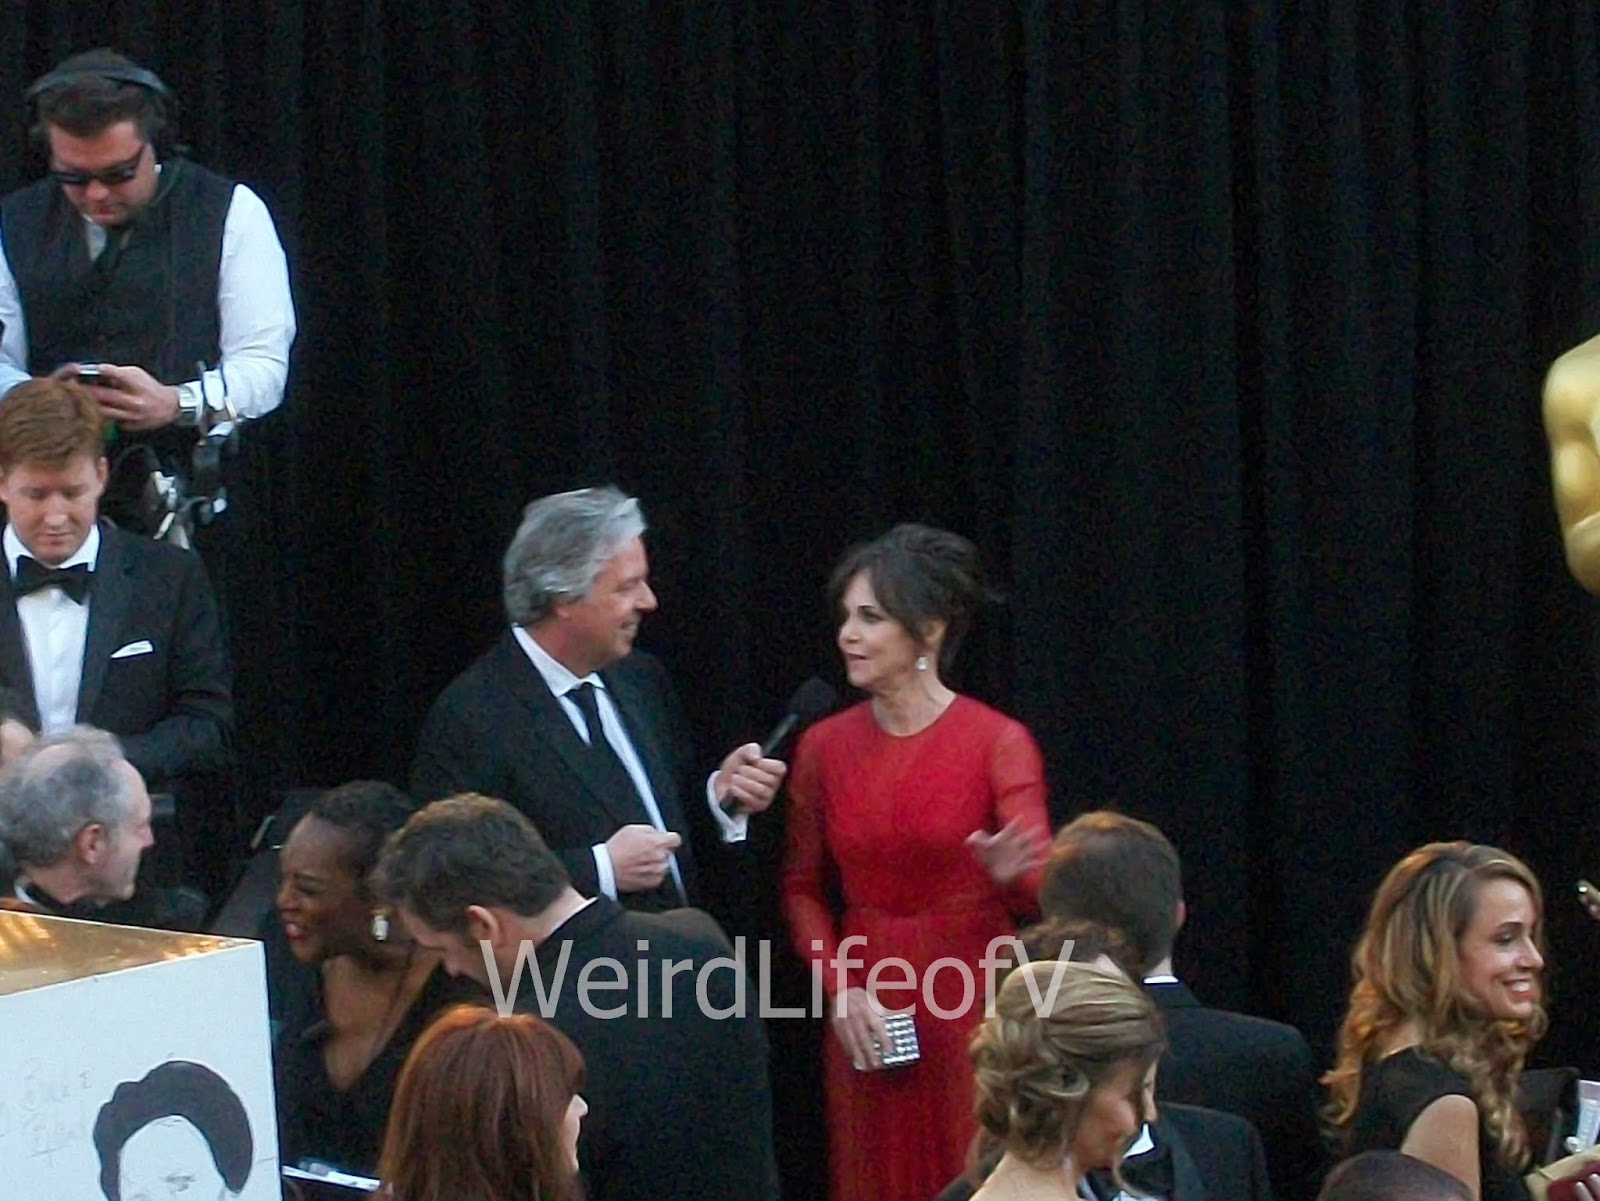 Sally Field being interviewed by Chris Connelly at the 2013 Academy Awards